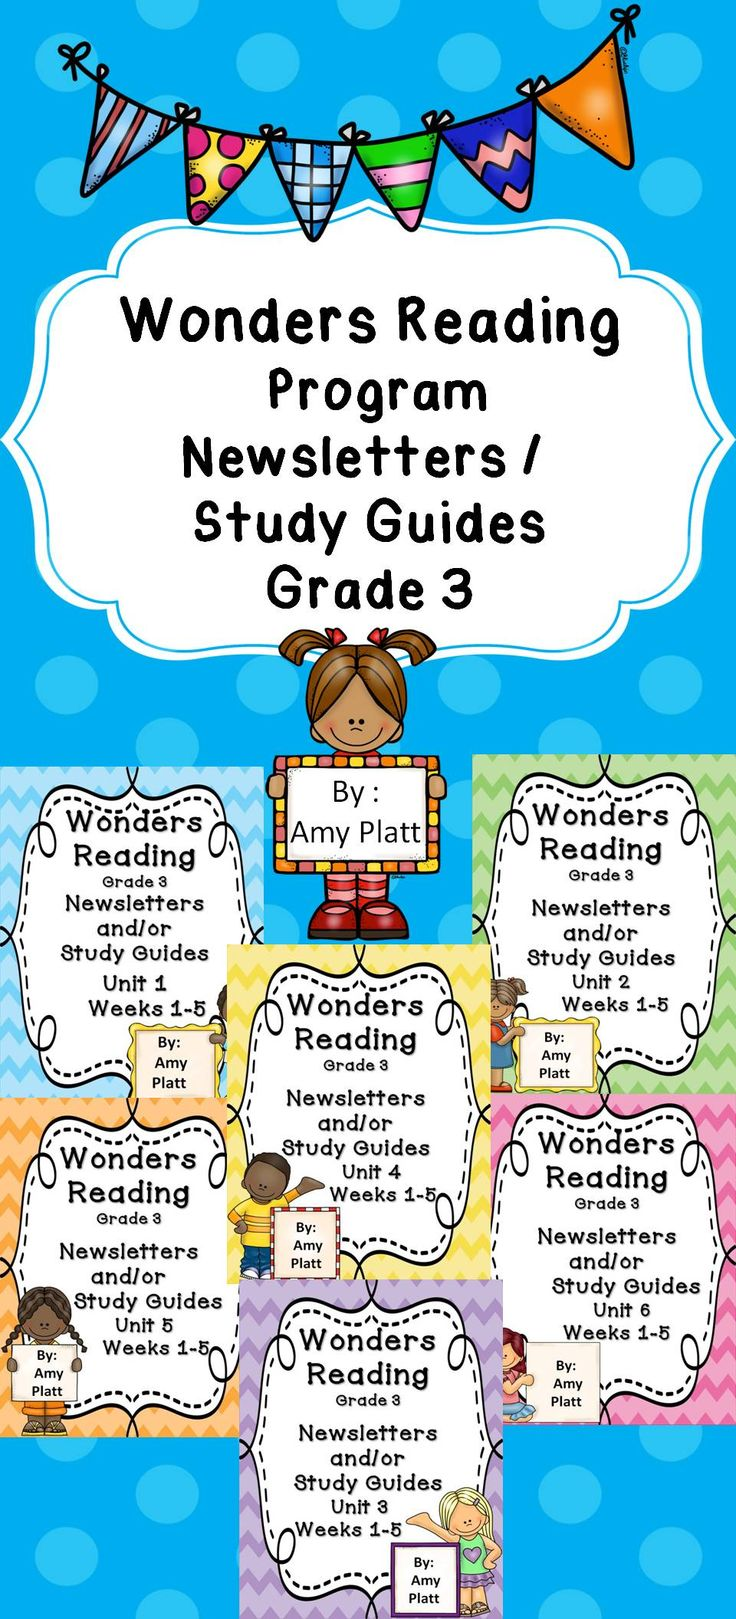 These are newsletters / study guides that go along with McGraw Hill Wonders Reading program for Grade 3. All the weekly skills are neatly organized in this newsletter that can be sent home each week. It's a great supplemental piece to the program!